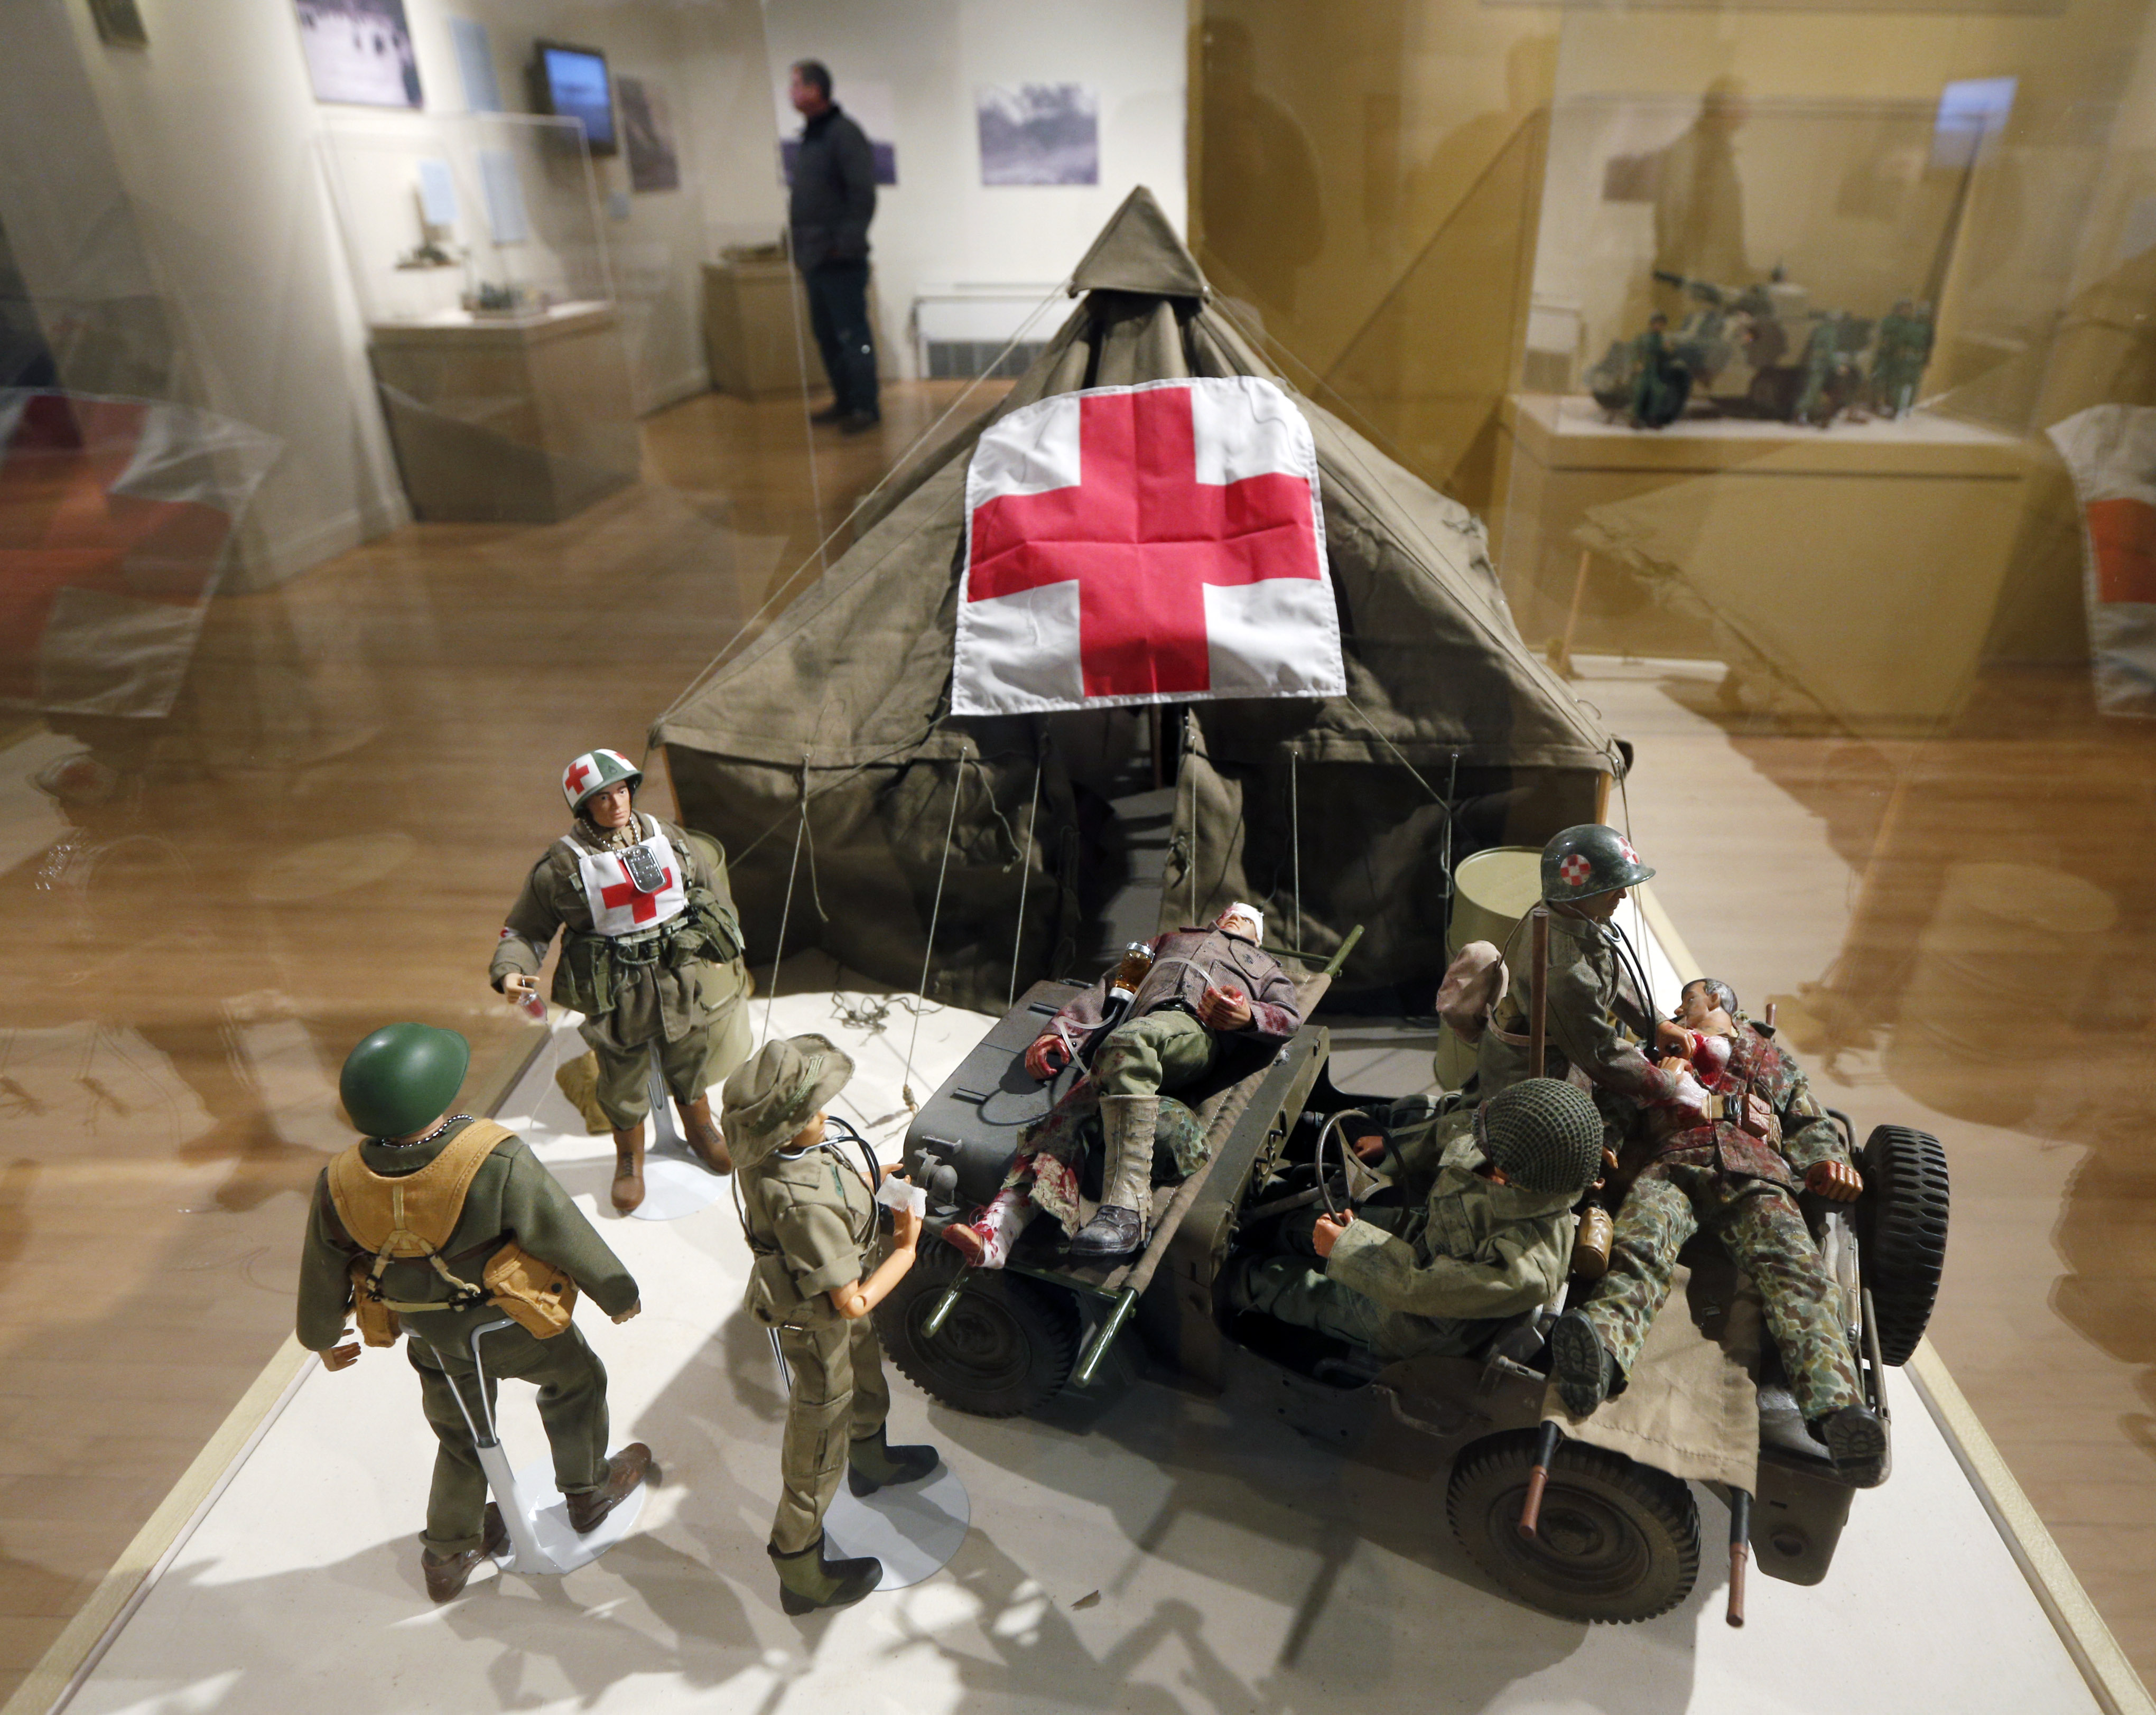 In this Jan. 31, 2014 photo shows G.I. Joe action figures are arranged in a mobile army surgical hospital in a display at the New York State Military Museum in Saratoga Springs, N.Y. A half-century after the 12-inch doll was introduced at a New York City toy fair, the iconic action figure is being celebrated by collectors with a display at the military museum, while the toy's maker plans other anniversary events to be announced later this month. (AP Photo/Mike Groll)